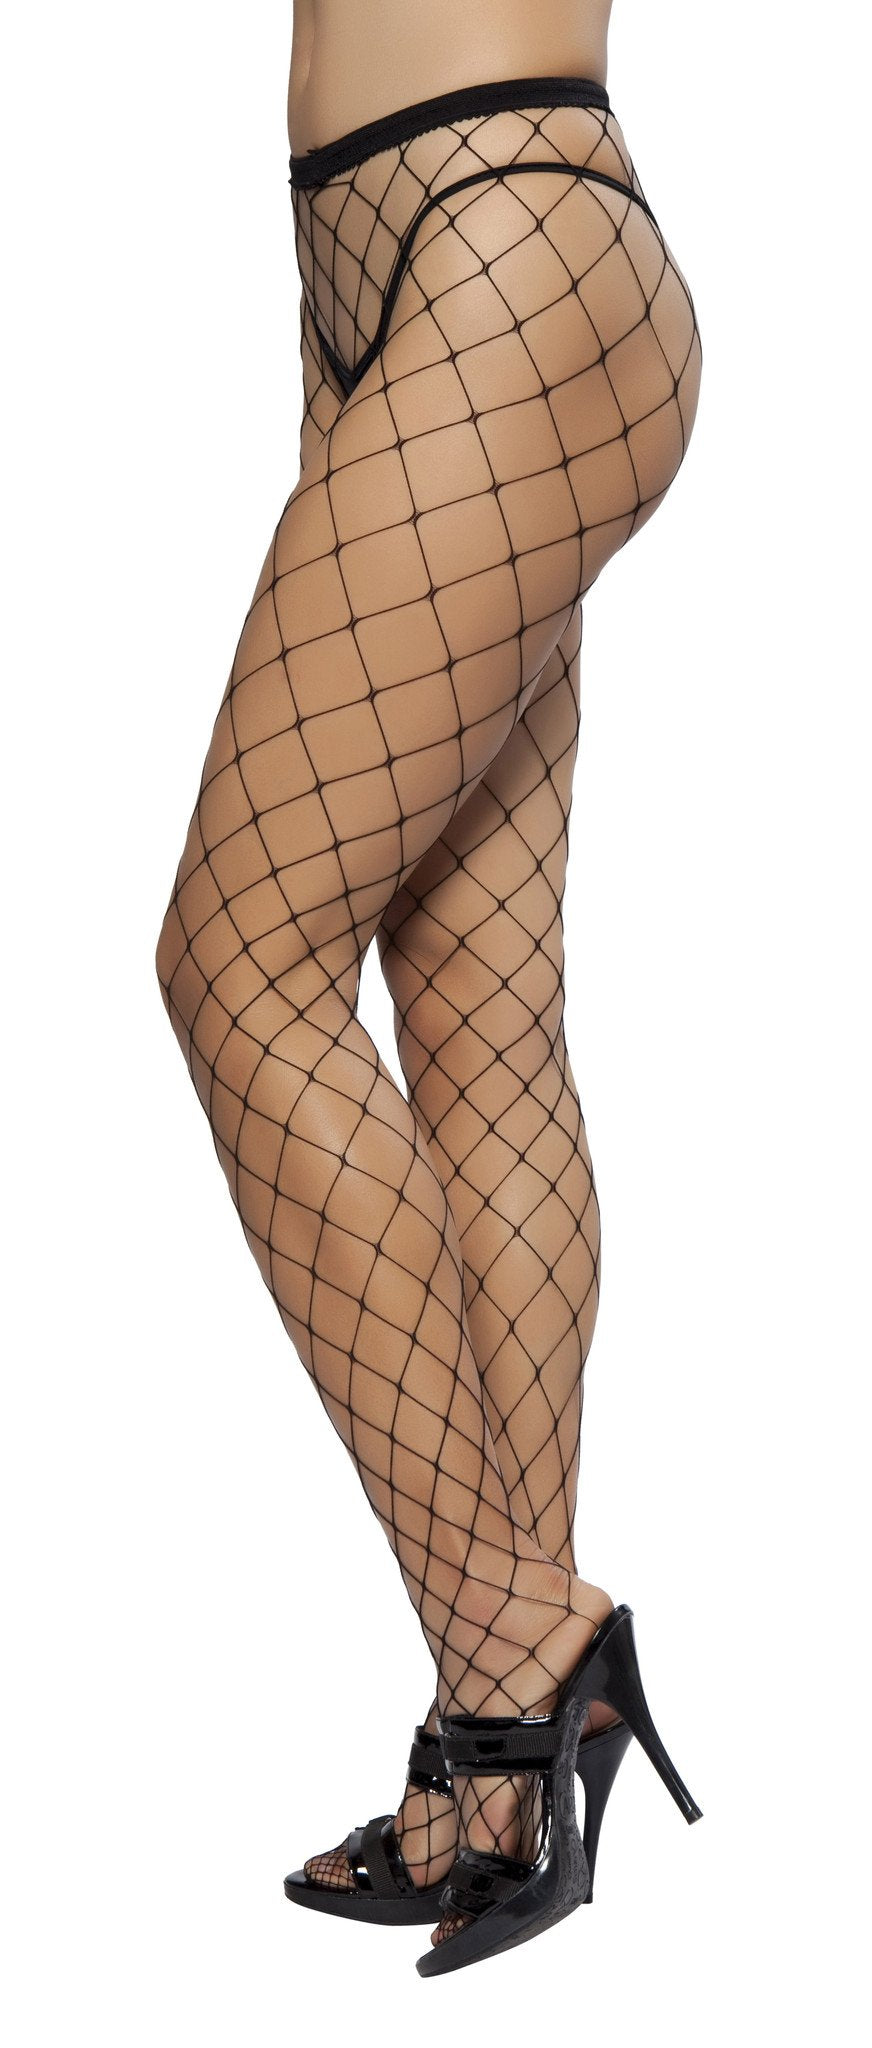 Open Fish Net Pantyhose - PlaythingsMiami